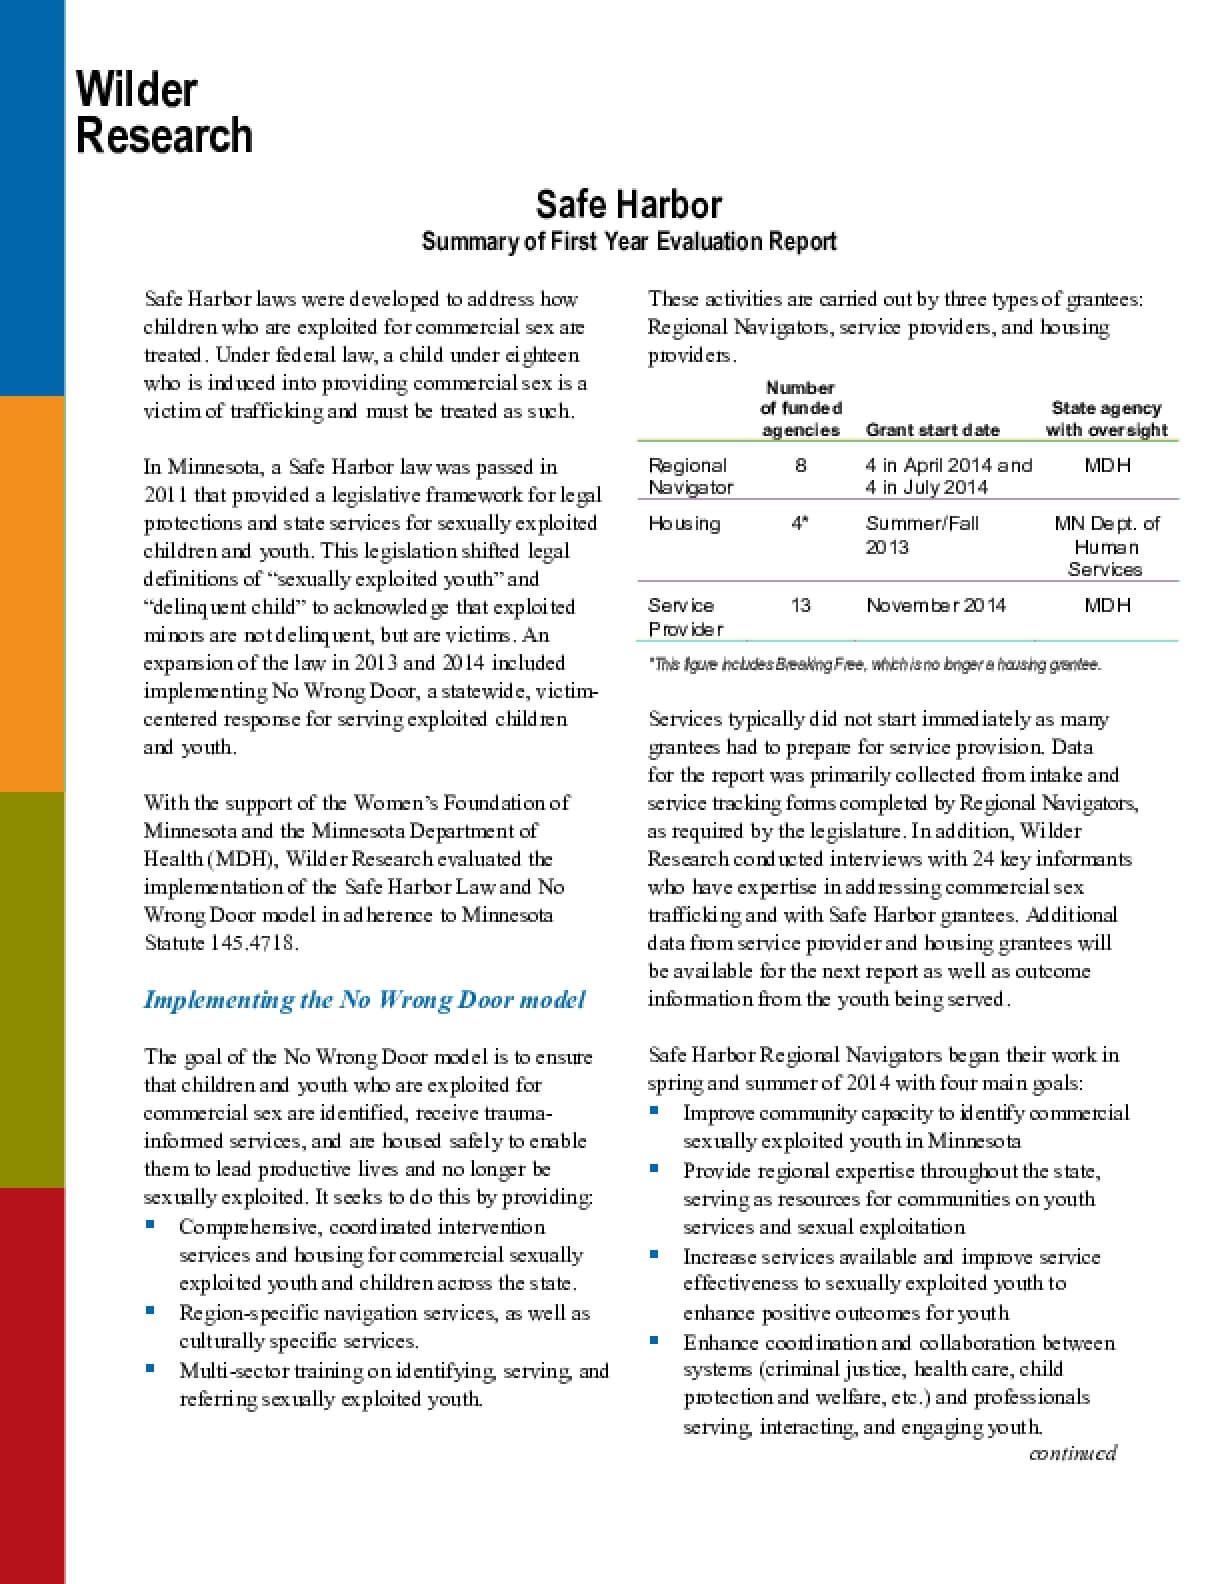 Safe Harbor: Summary of First Year Evaluation Report